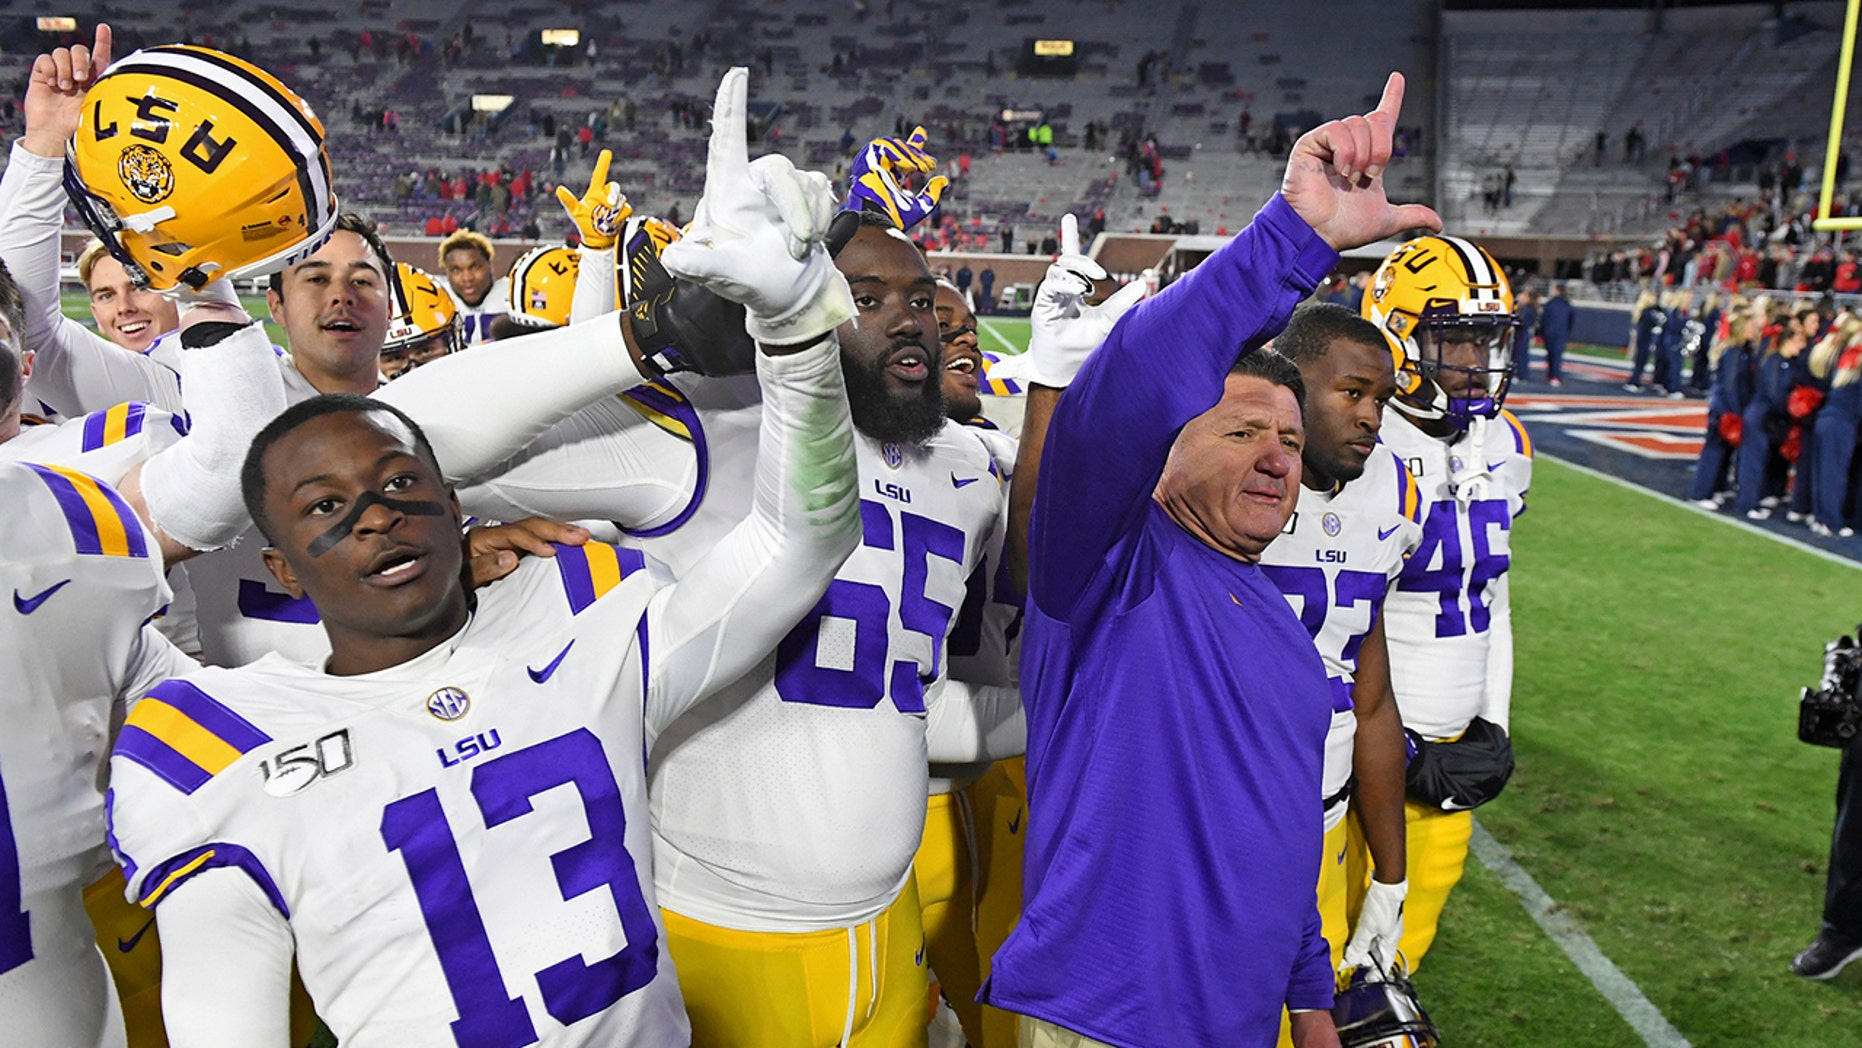 Westlake Legal Group Ed-Orgeron LSU, Ohio State, Clemson, Georgia remain atop CFP rankings fox-news/sports/ncaa/ohio-state-buckeyes fox-news/sports/ncaa/lsu-tigers fox-news/sports/ncaa/georgia-bulldogs fox-news/sports/ncaa/clemson-tigers fox-news/sports/ncaa-fb fox-news/sports/ncaa fnc/sports fnc Associated Press article 9f3c09c8-236c-5491-bbc0-b204daf71ef8